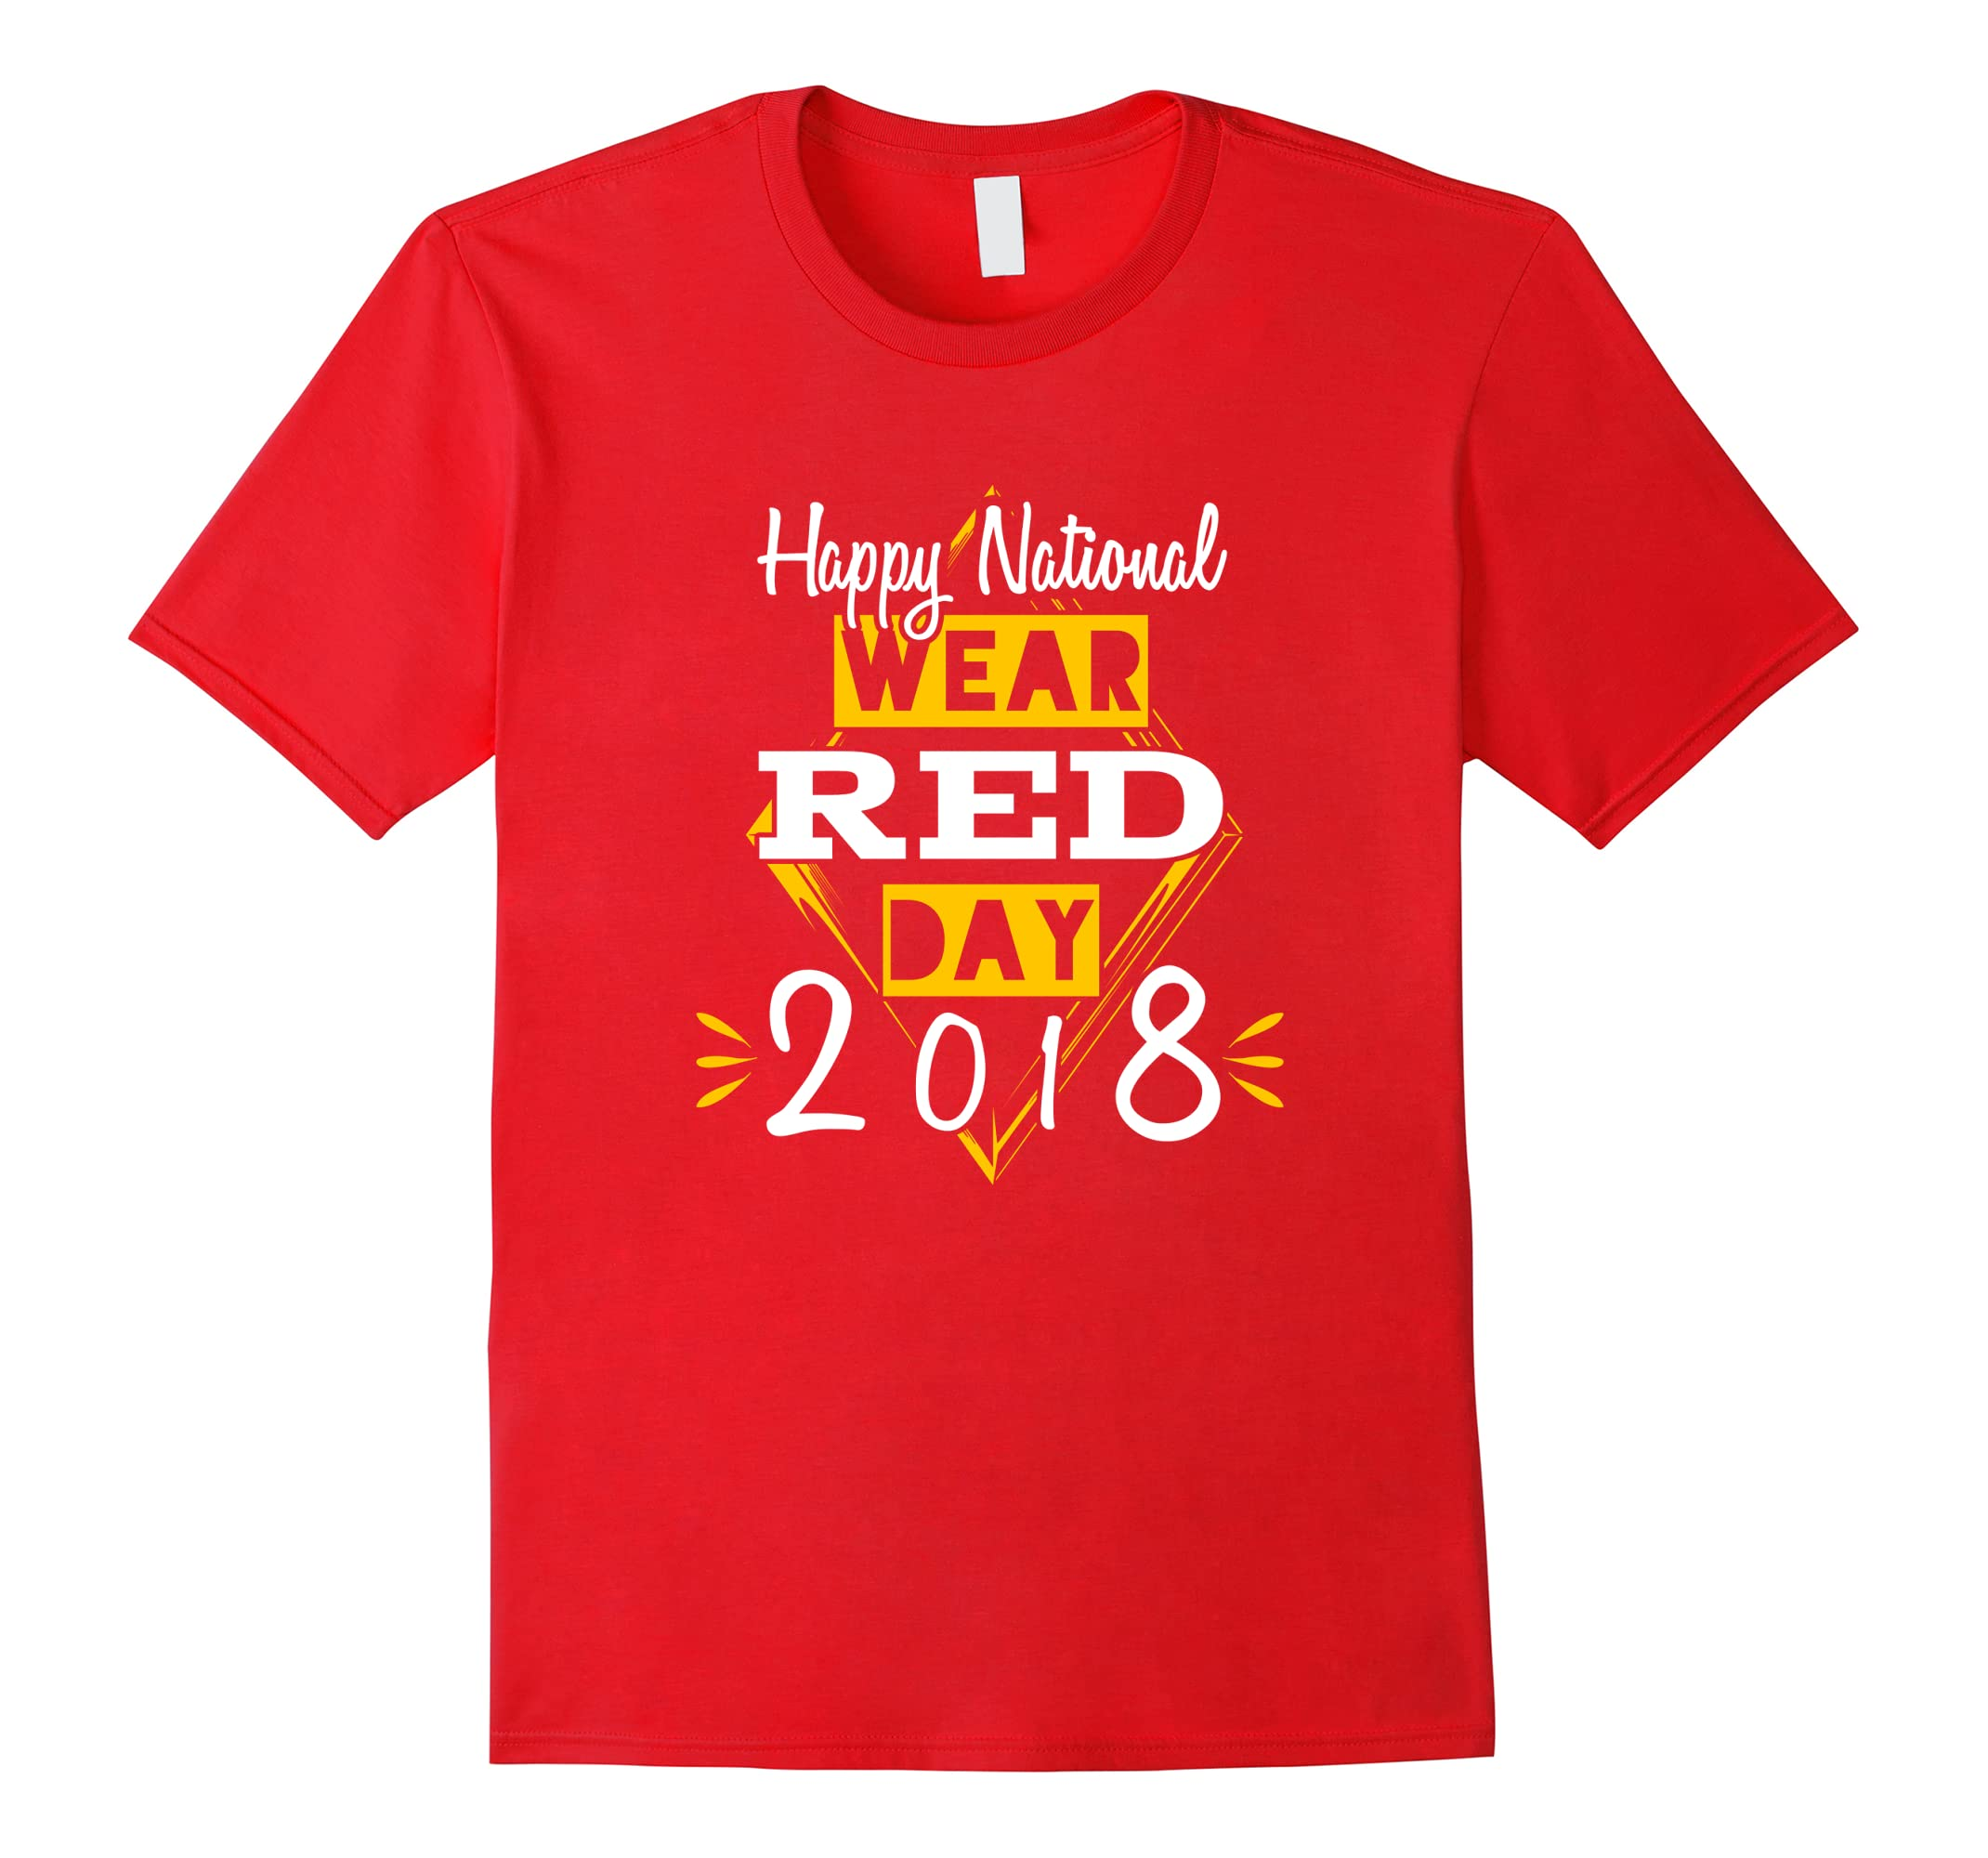 Happy National Wear Red Day 2018 Shirt-ah my shirt one gift